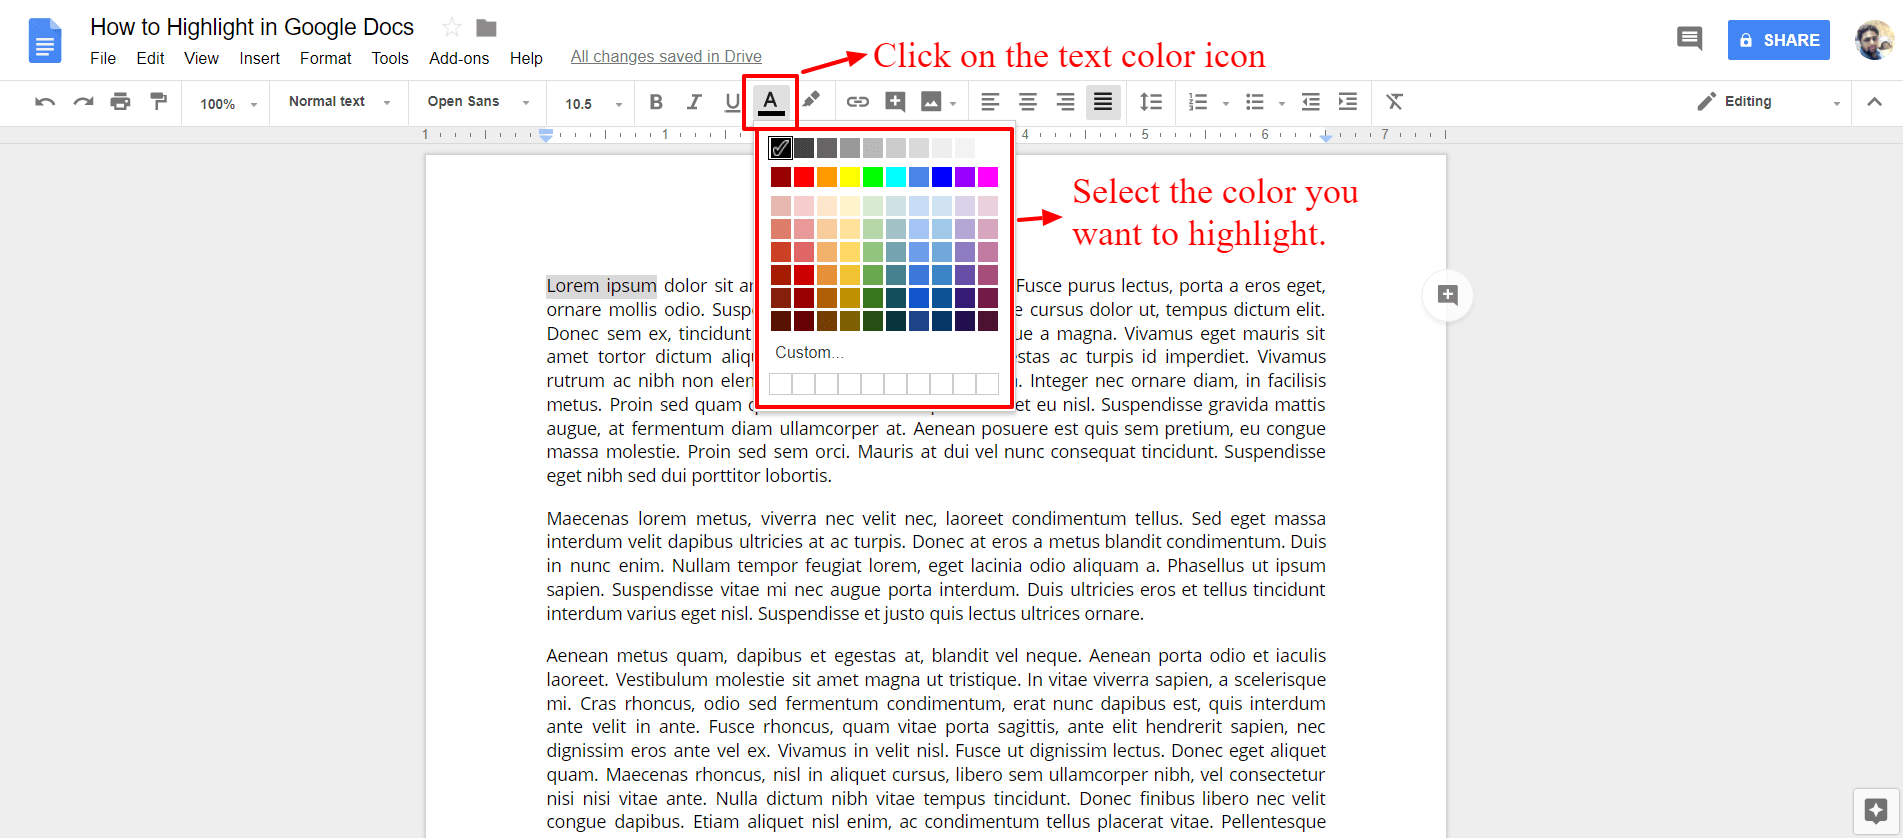 Select the text color - Google Docs